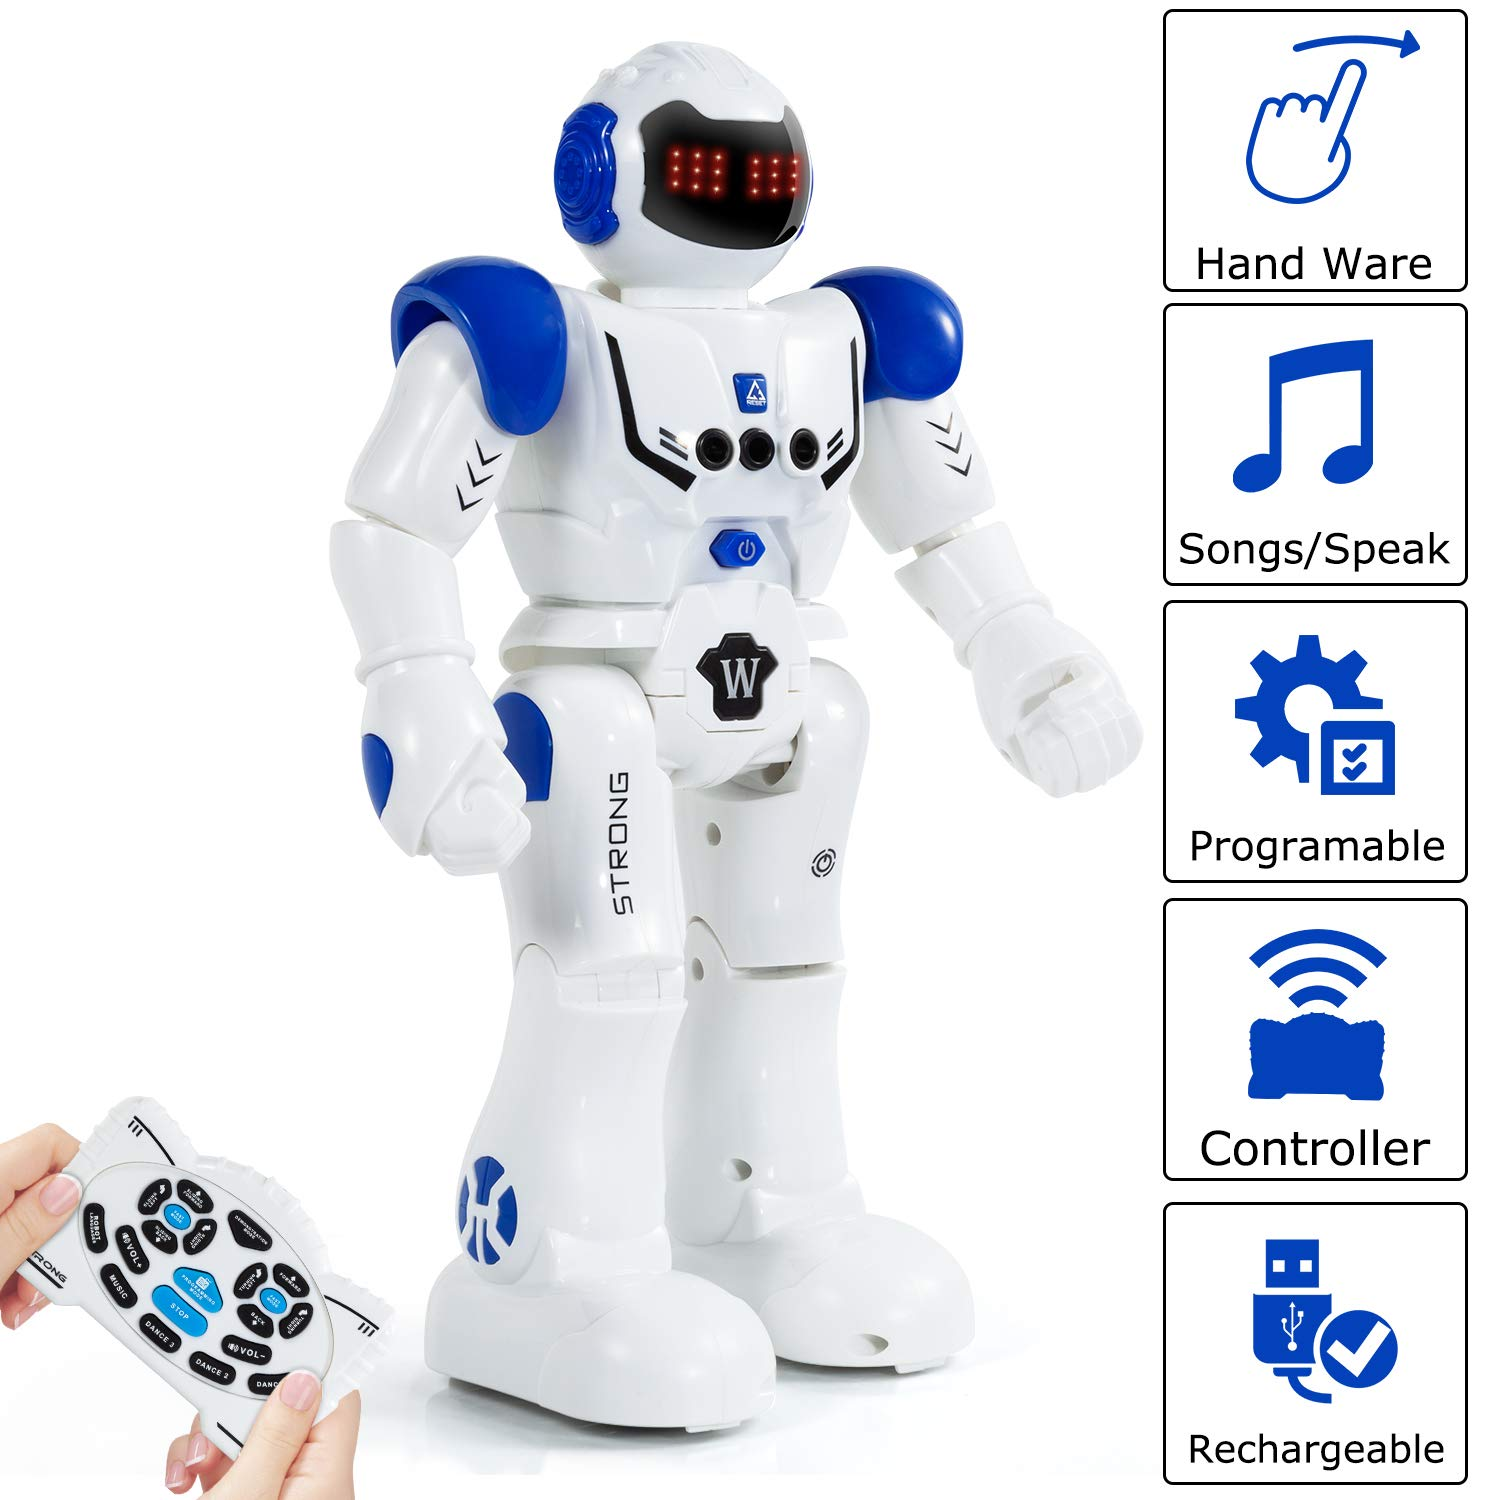 KINFAYV Smart Robot Toy - Remote Control Robot, RC Programmable Educational Robot for Kids Birthday Gift Present, Interactive Walking Singing Dancing Smart Intelligent Robotics for Kids by KINFAYV (Image #1)